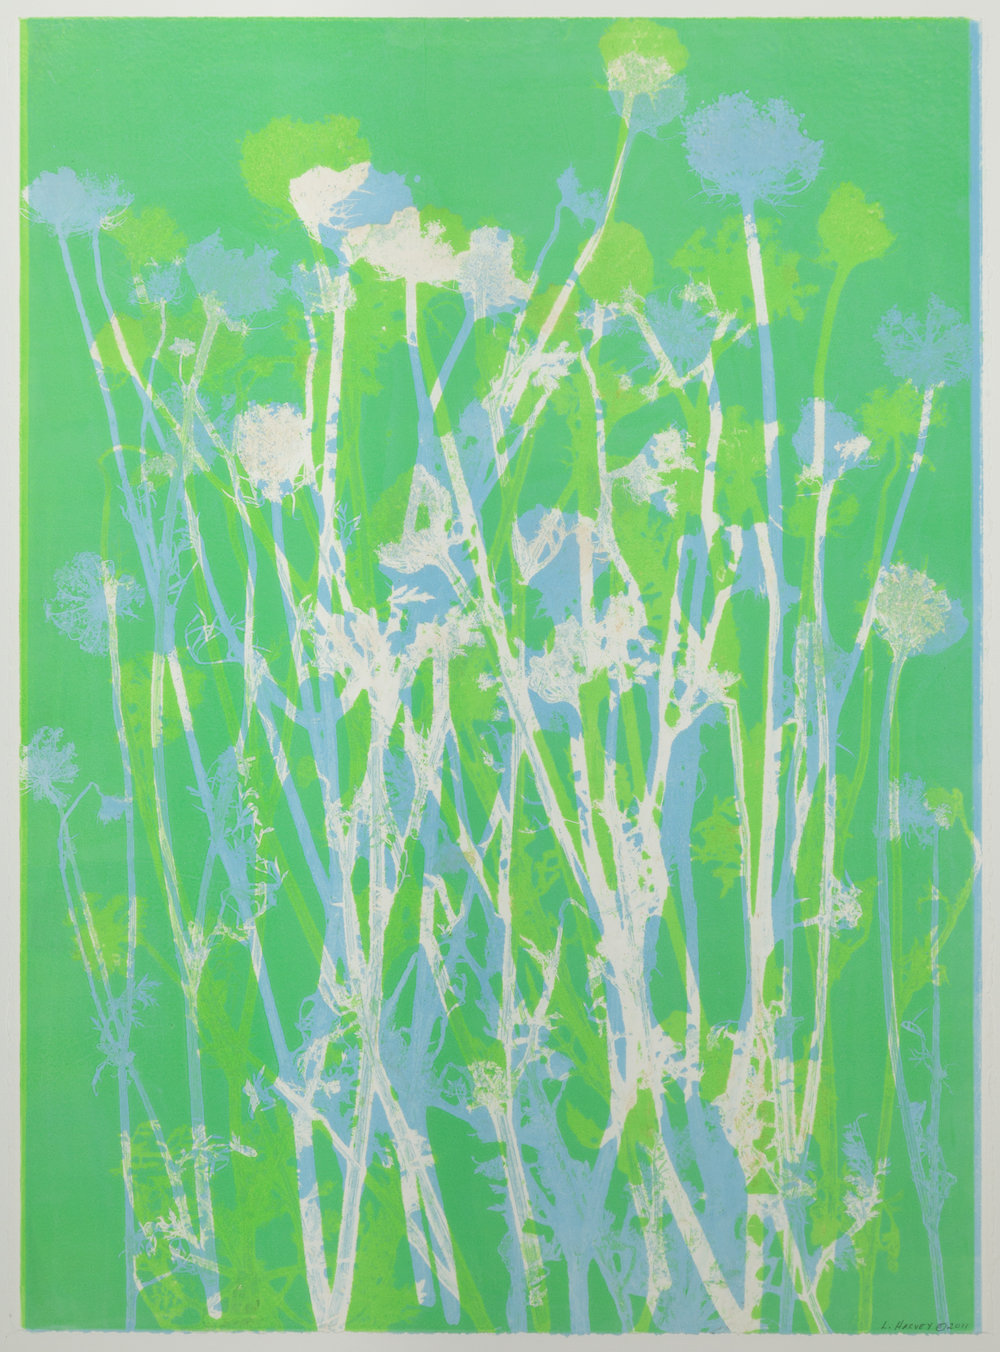 """Meadow Flowers"", monoprint, 33.25"" x 25.75"", $600 (framed)"